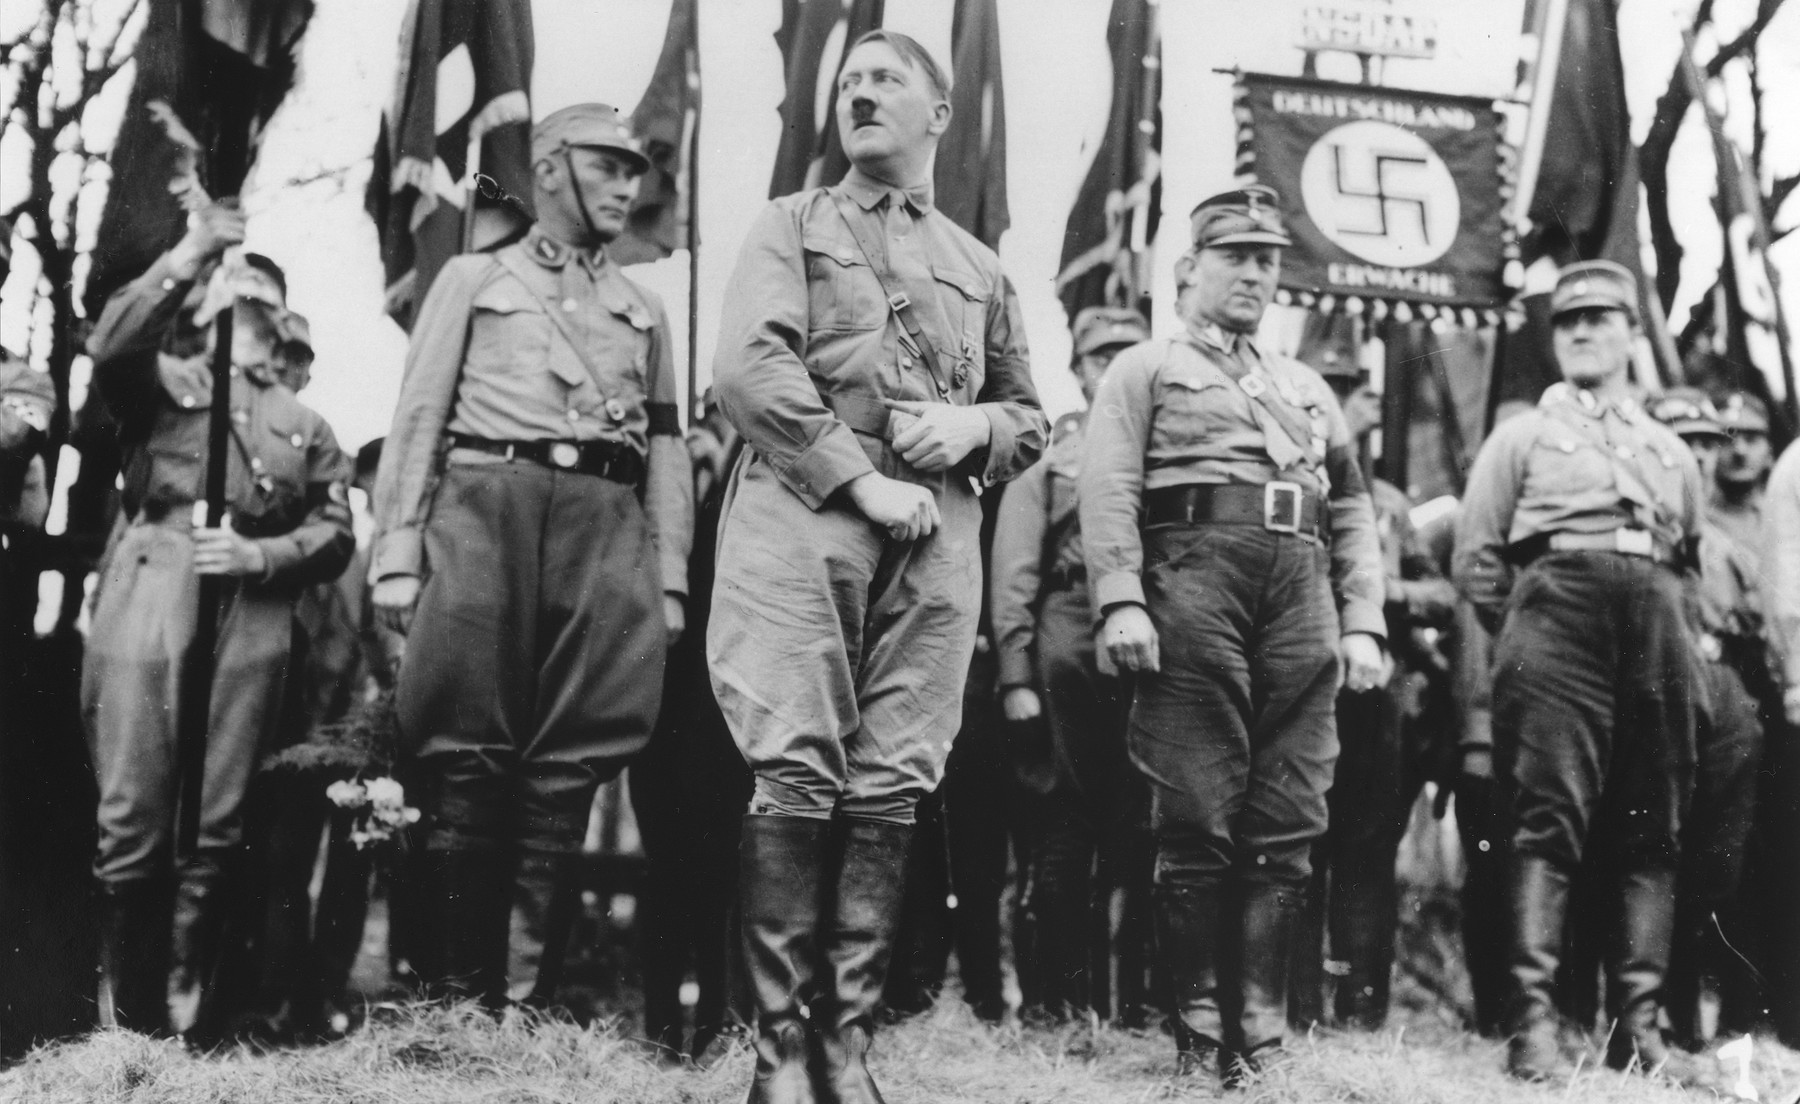 Adolf Hitler leads an SA unit in a Nazi party parade in Weimar ...